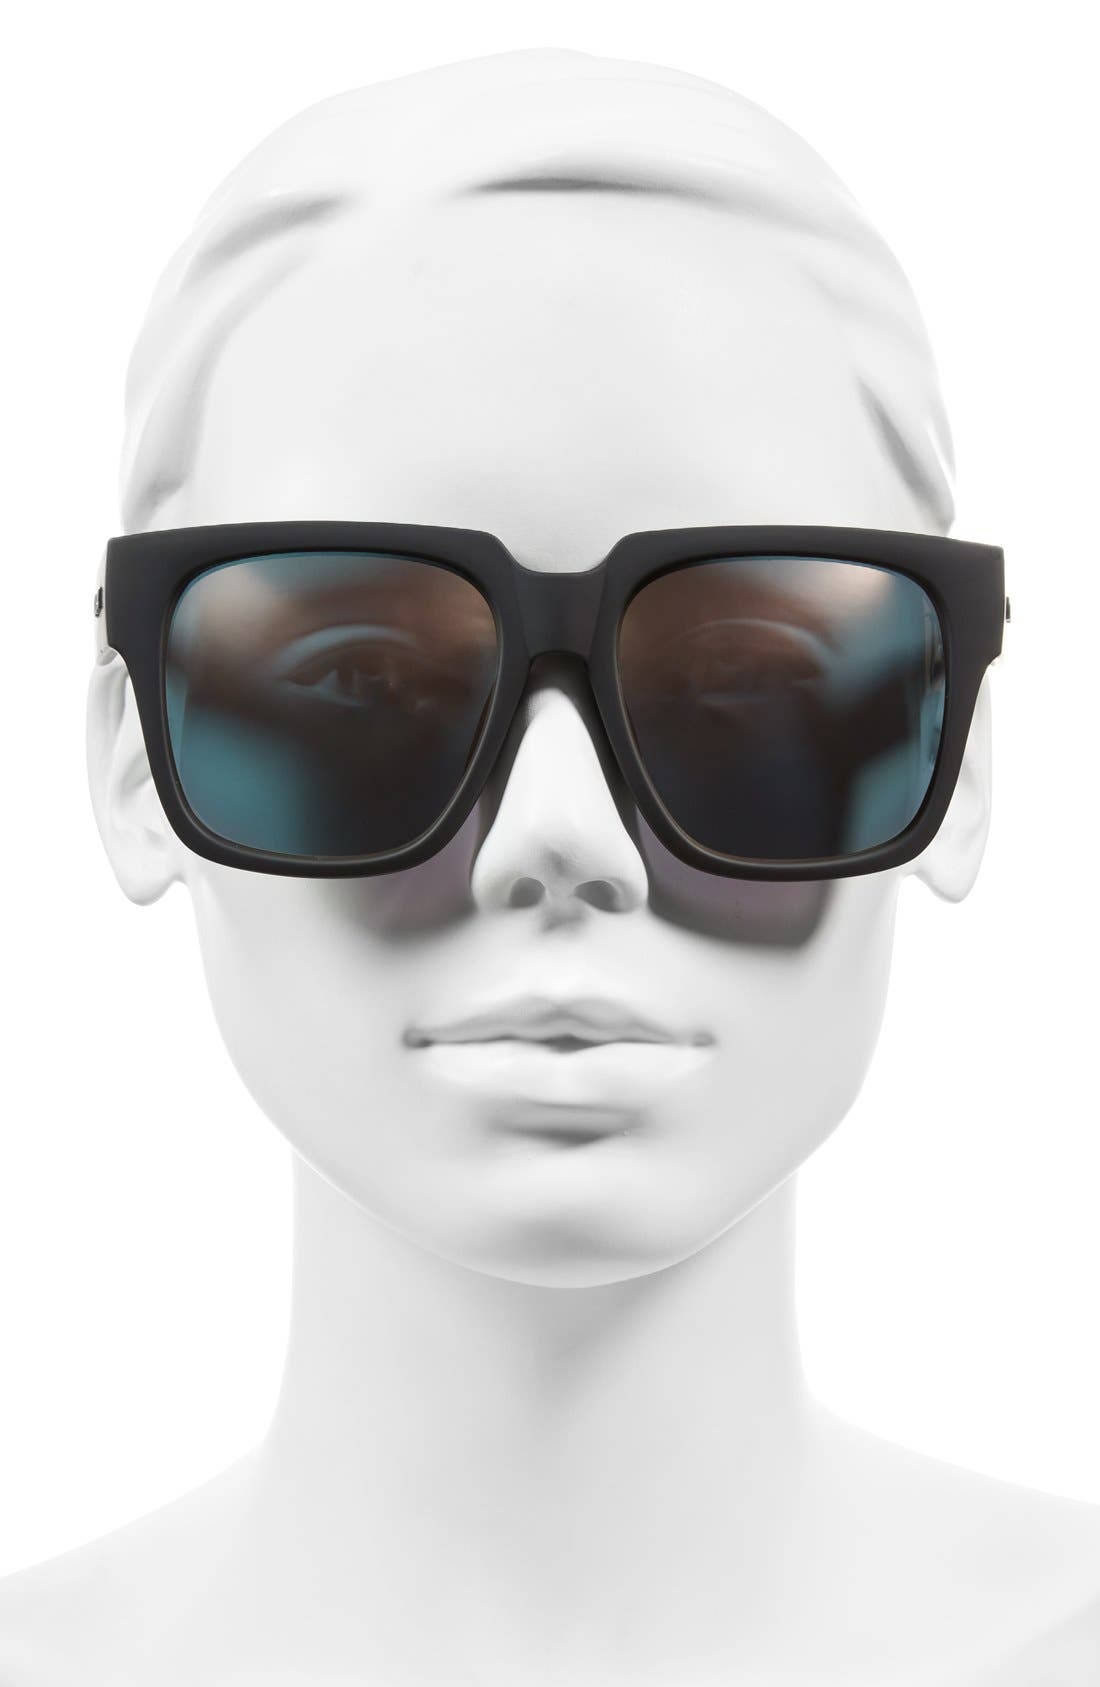 'On the Prowl' 55mm Square Sunglasses,                             Alternate thumbnail 2, color,                             Black/ Pink Mirror